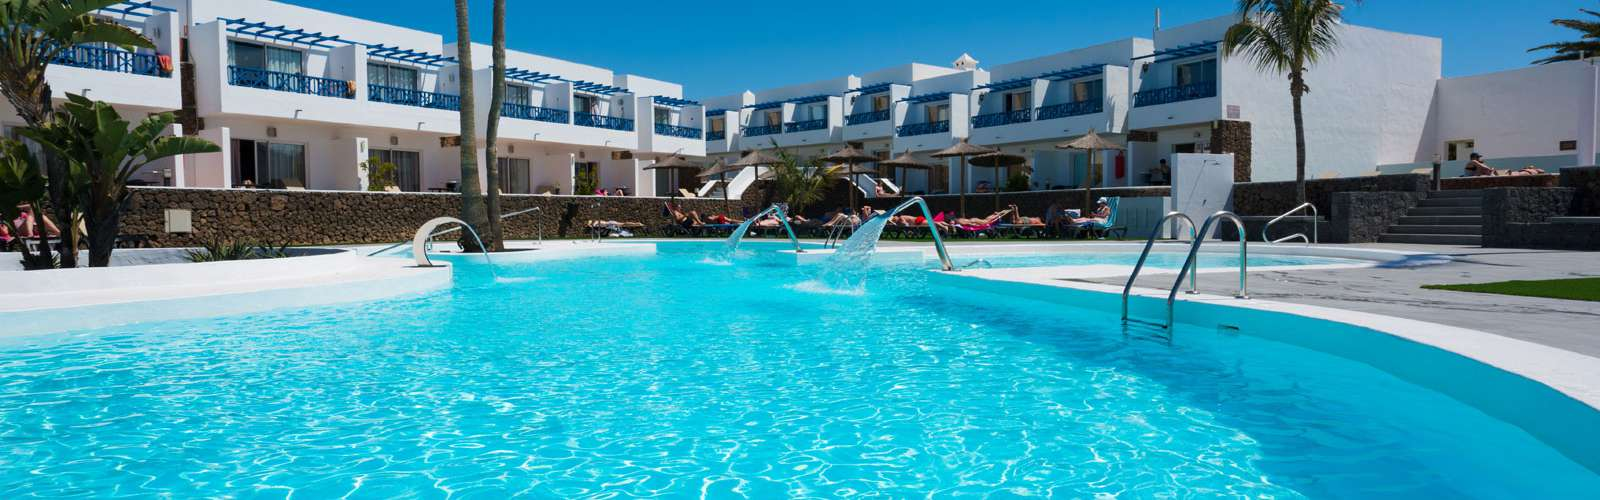 Hotels Costa Teguise | Club Siroco Apartments - Official Site